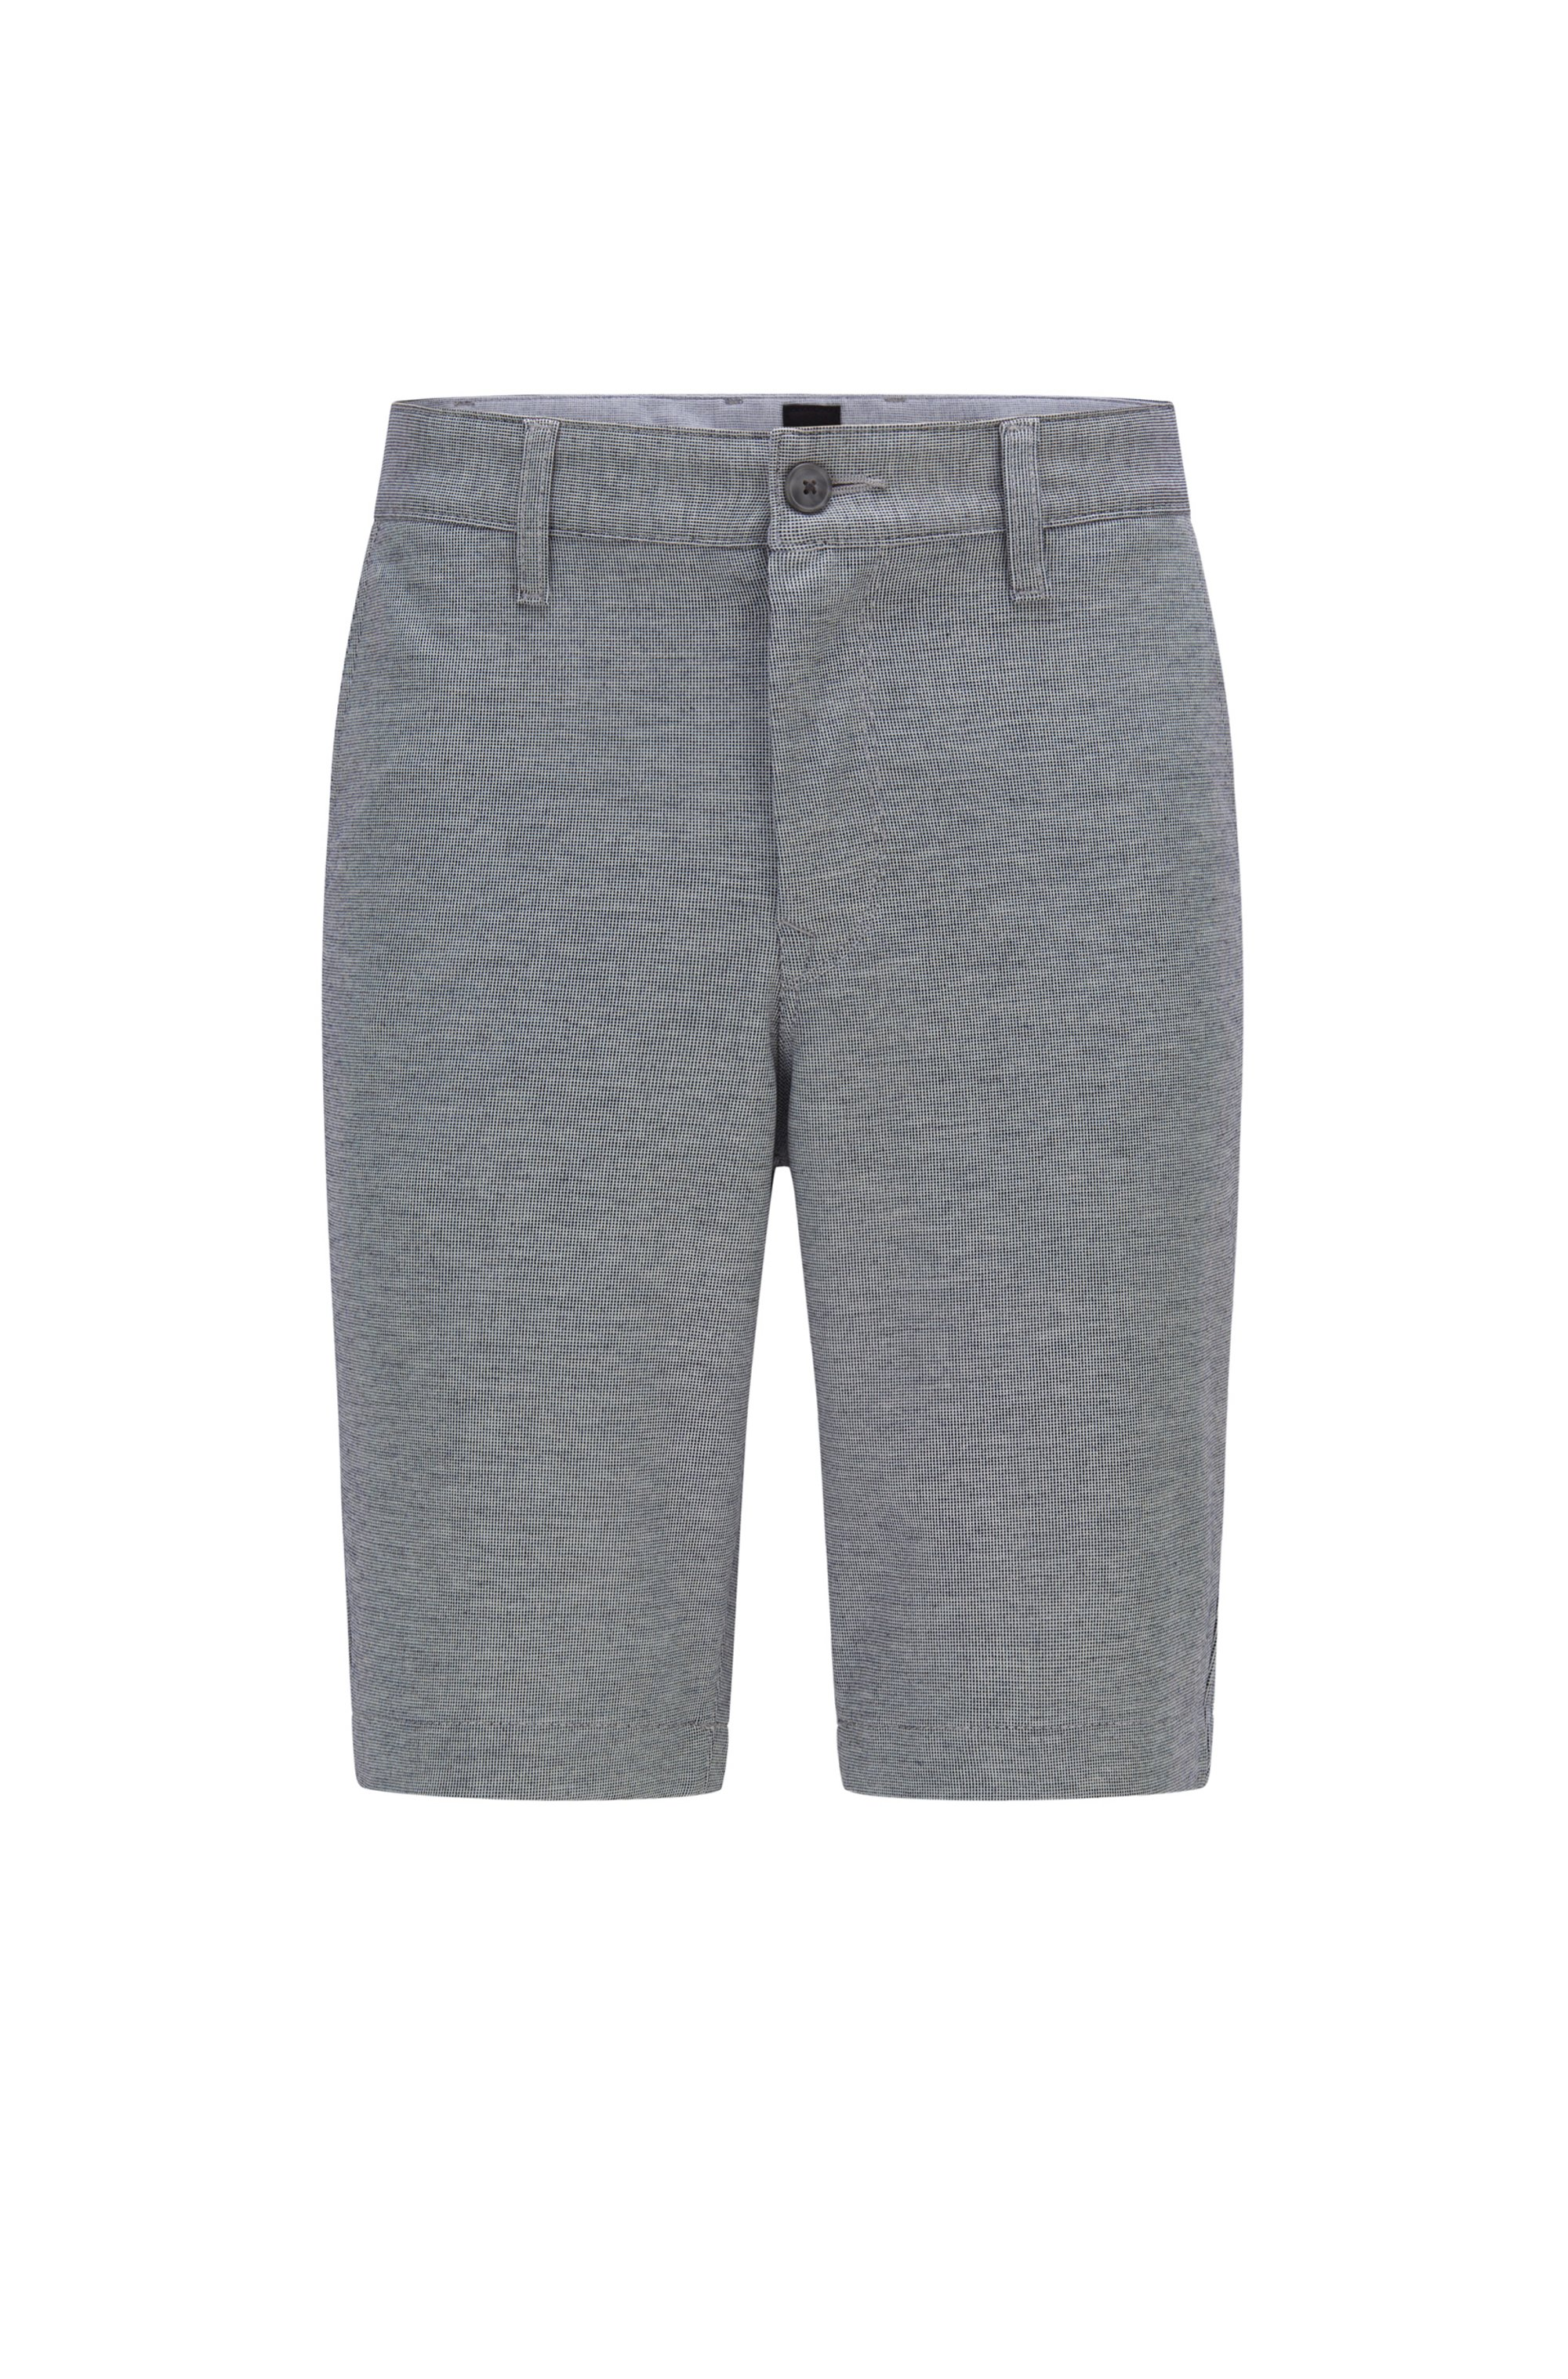 Tapered-fit shorts in two-tone knitted stretch fabric, Grey